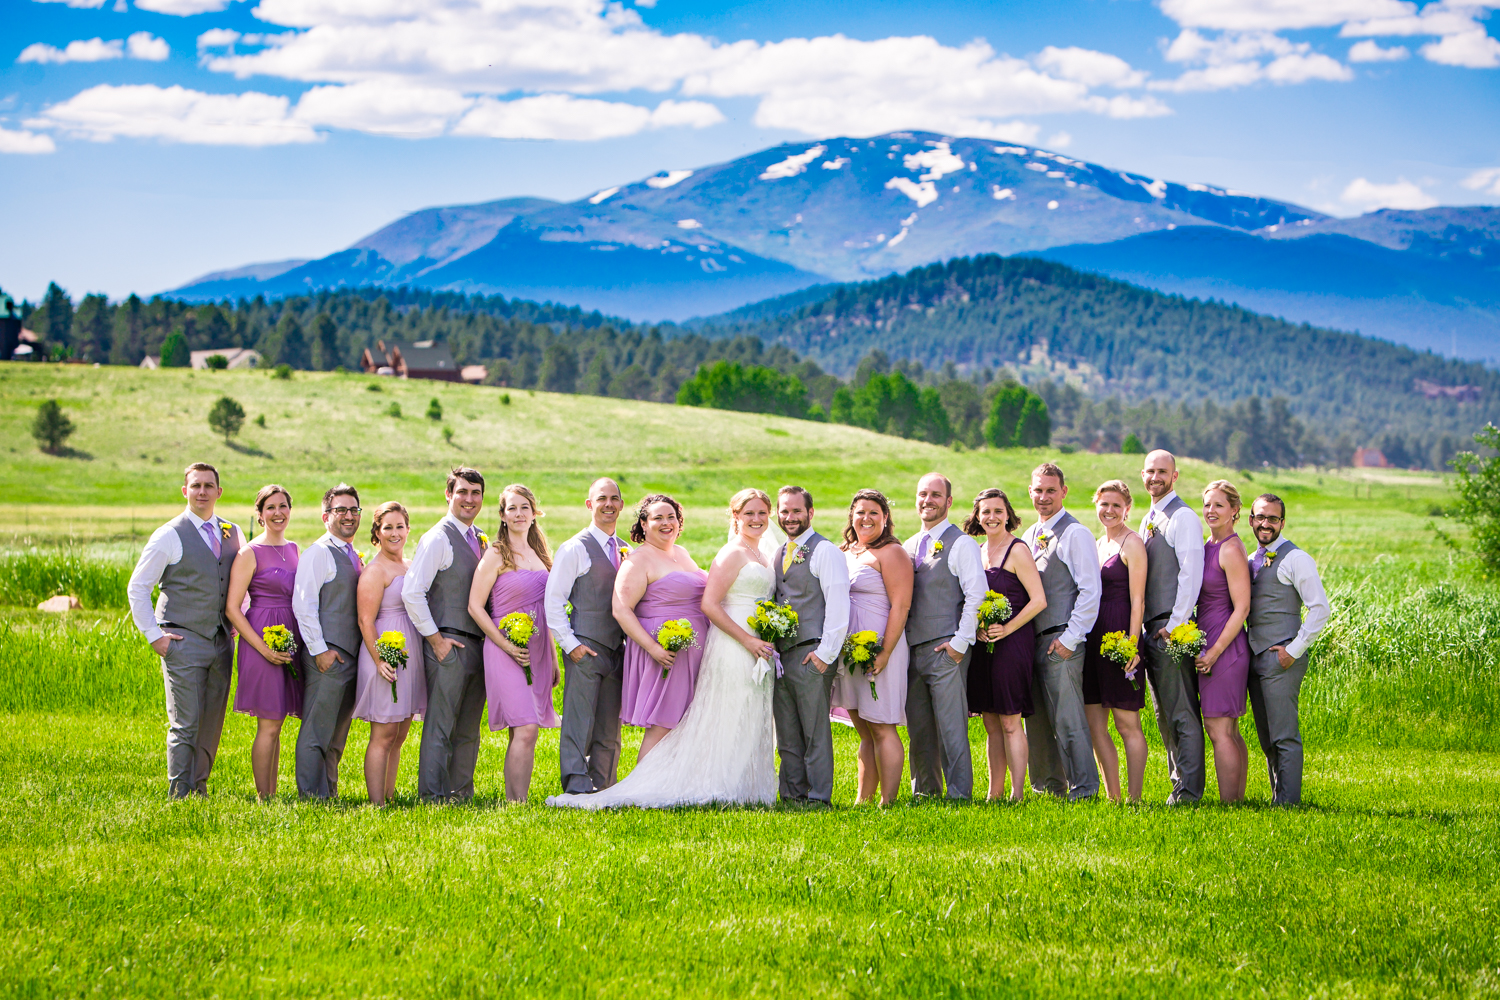 Wedding party. Deer Creek Valley Ranch Wedding. Photographed by JMGant Photography.